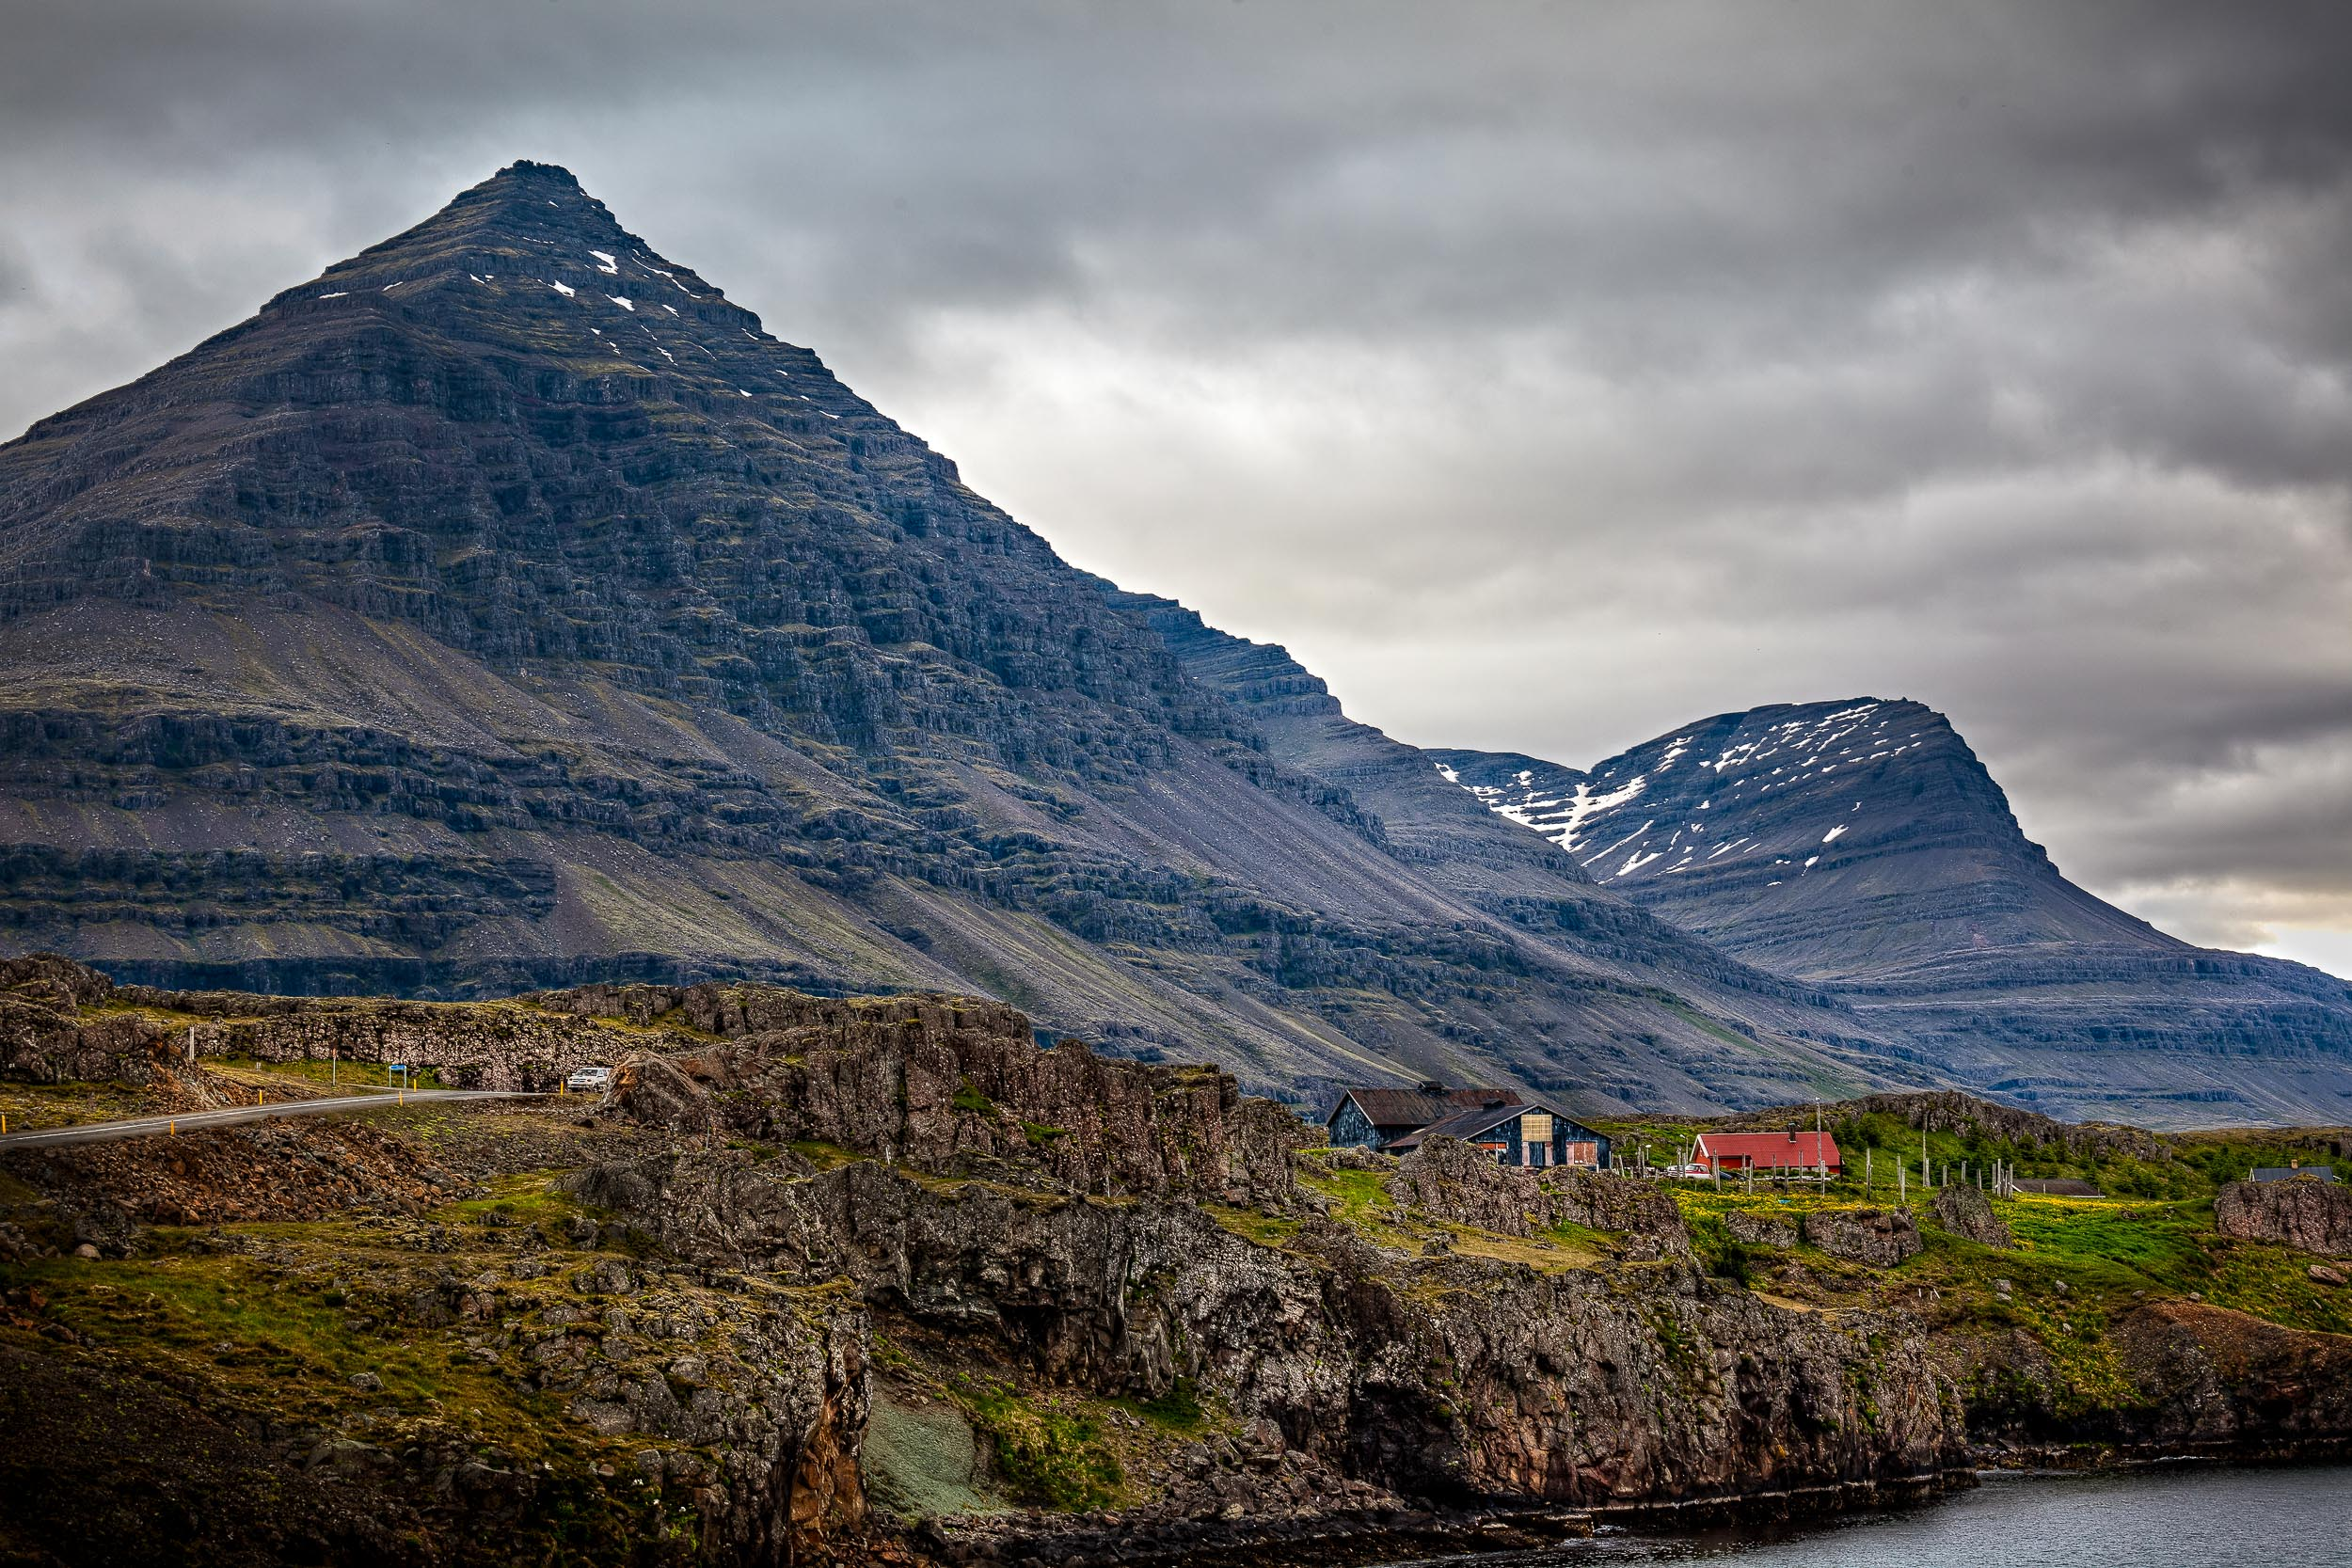 A    tiny hamlet   , set against    stunning mountain scenery   , by the coast in    Northern Iceland   .